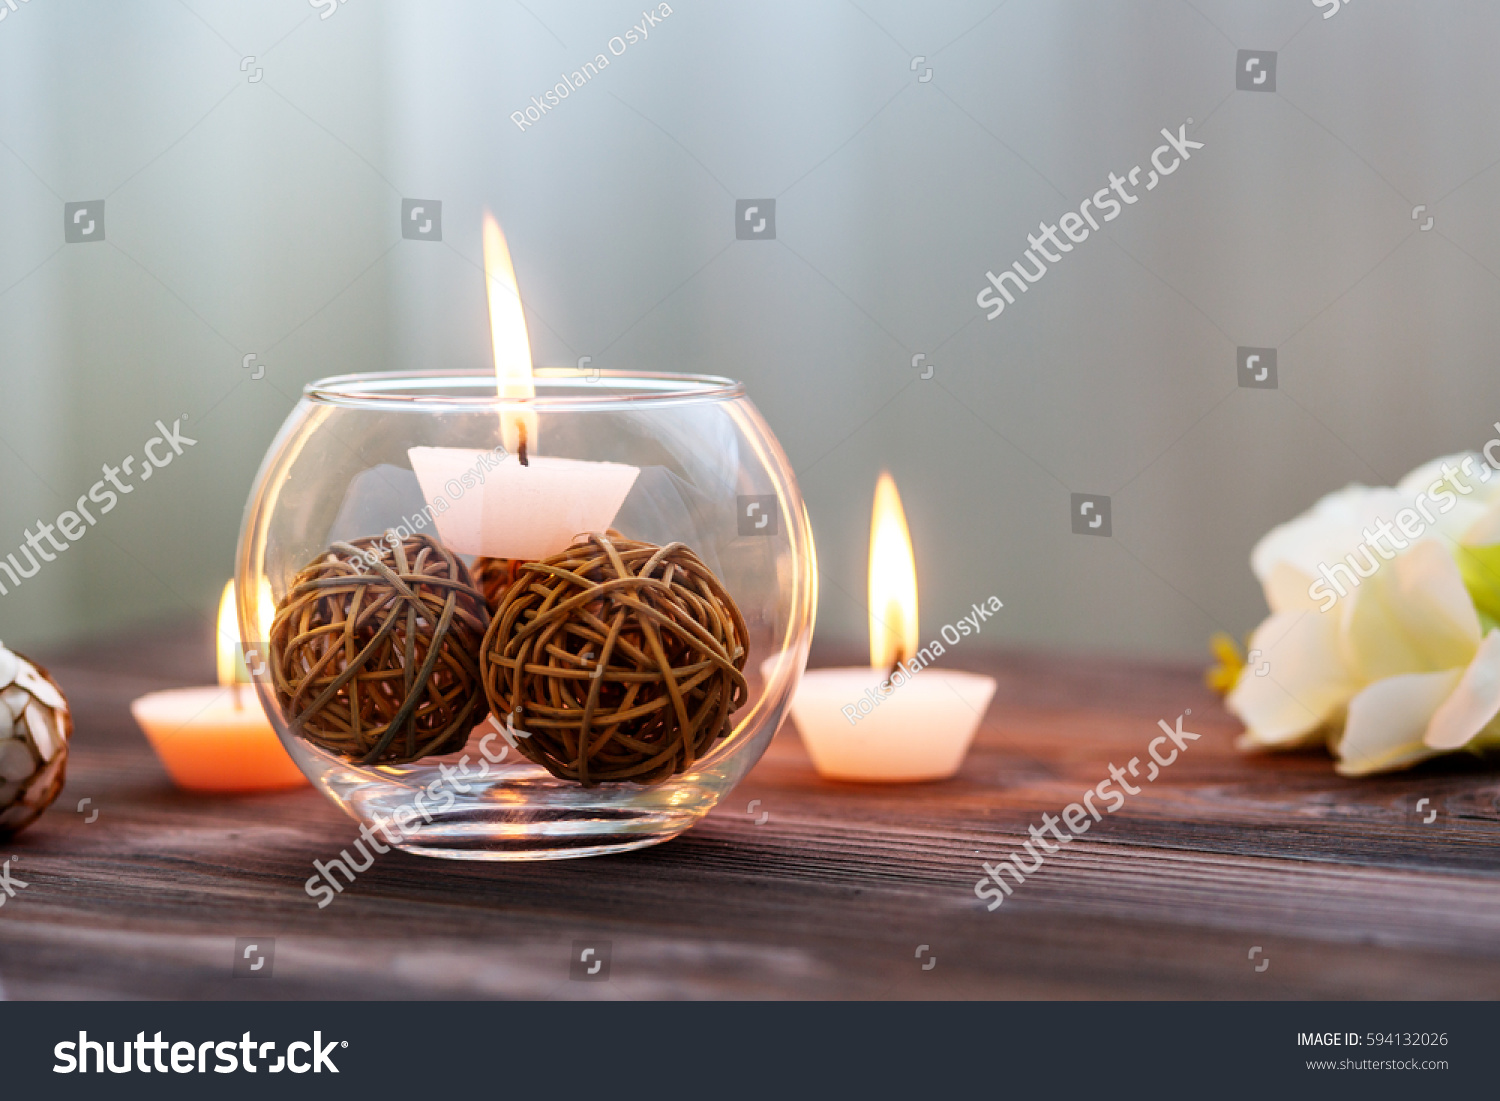 Candle glass vase decoration various interesting stock photo a candle in a glass vase decoration and various interesting elements on a dark wooden reviewsmspy